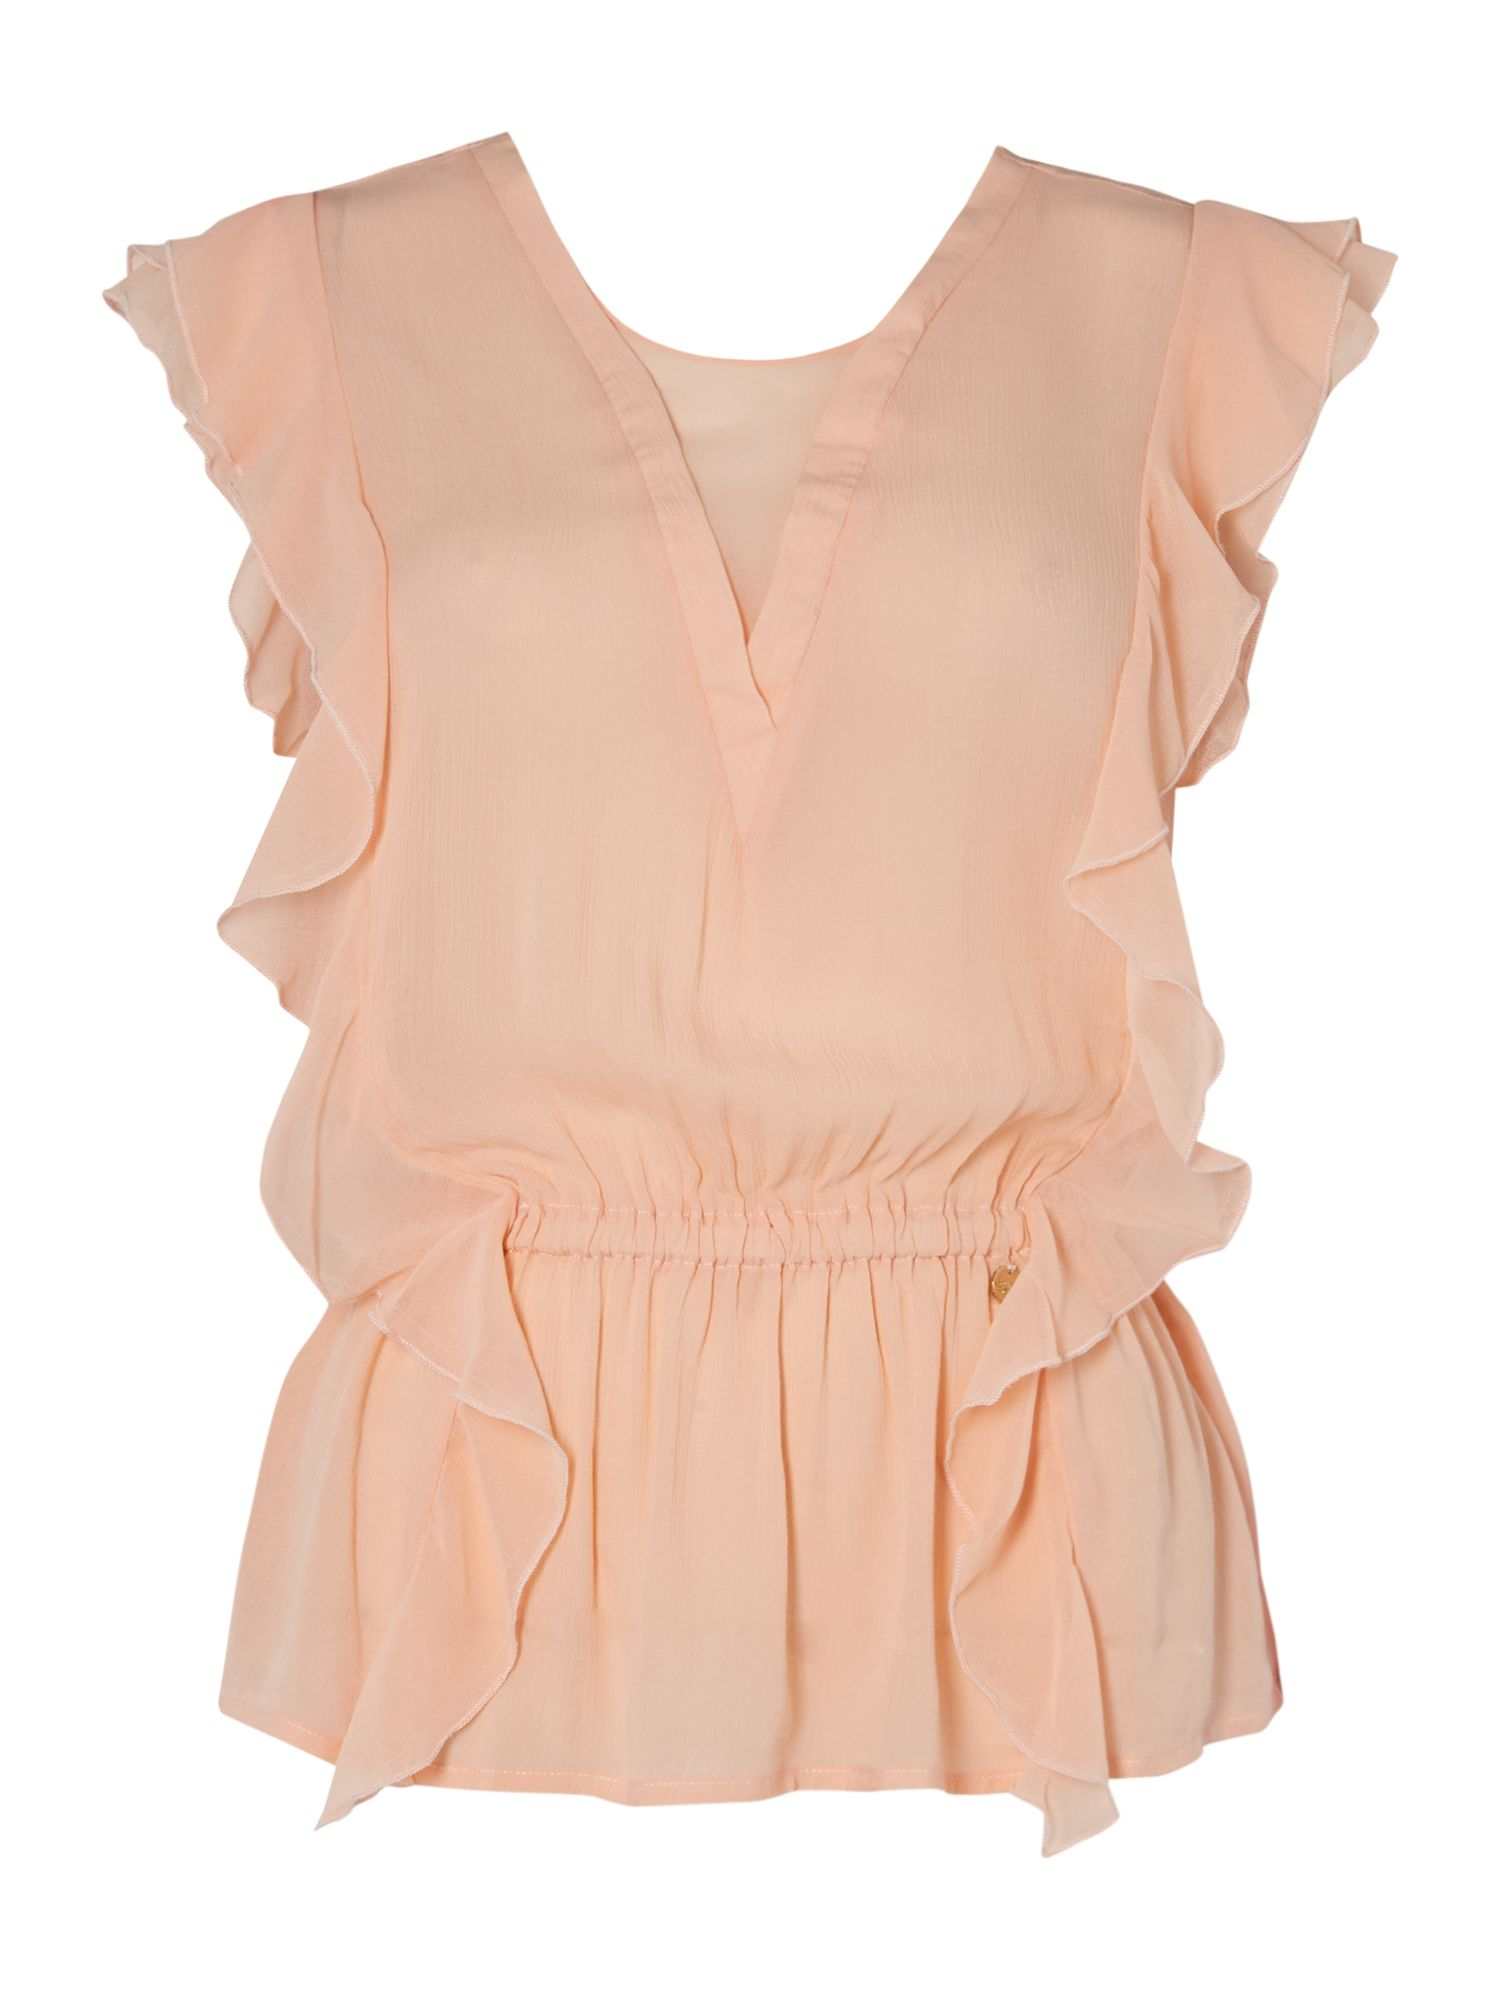 Salsa Short Sleeve V-Neck Top With Ruffle Detail, Pastel Pink